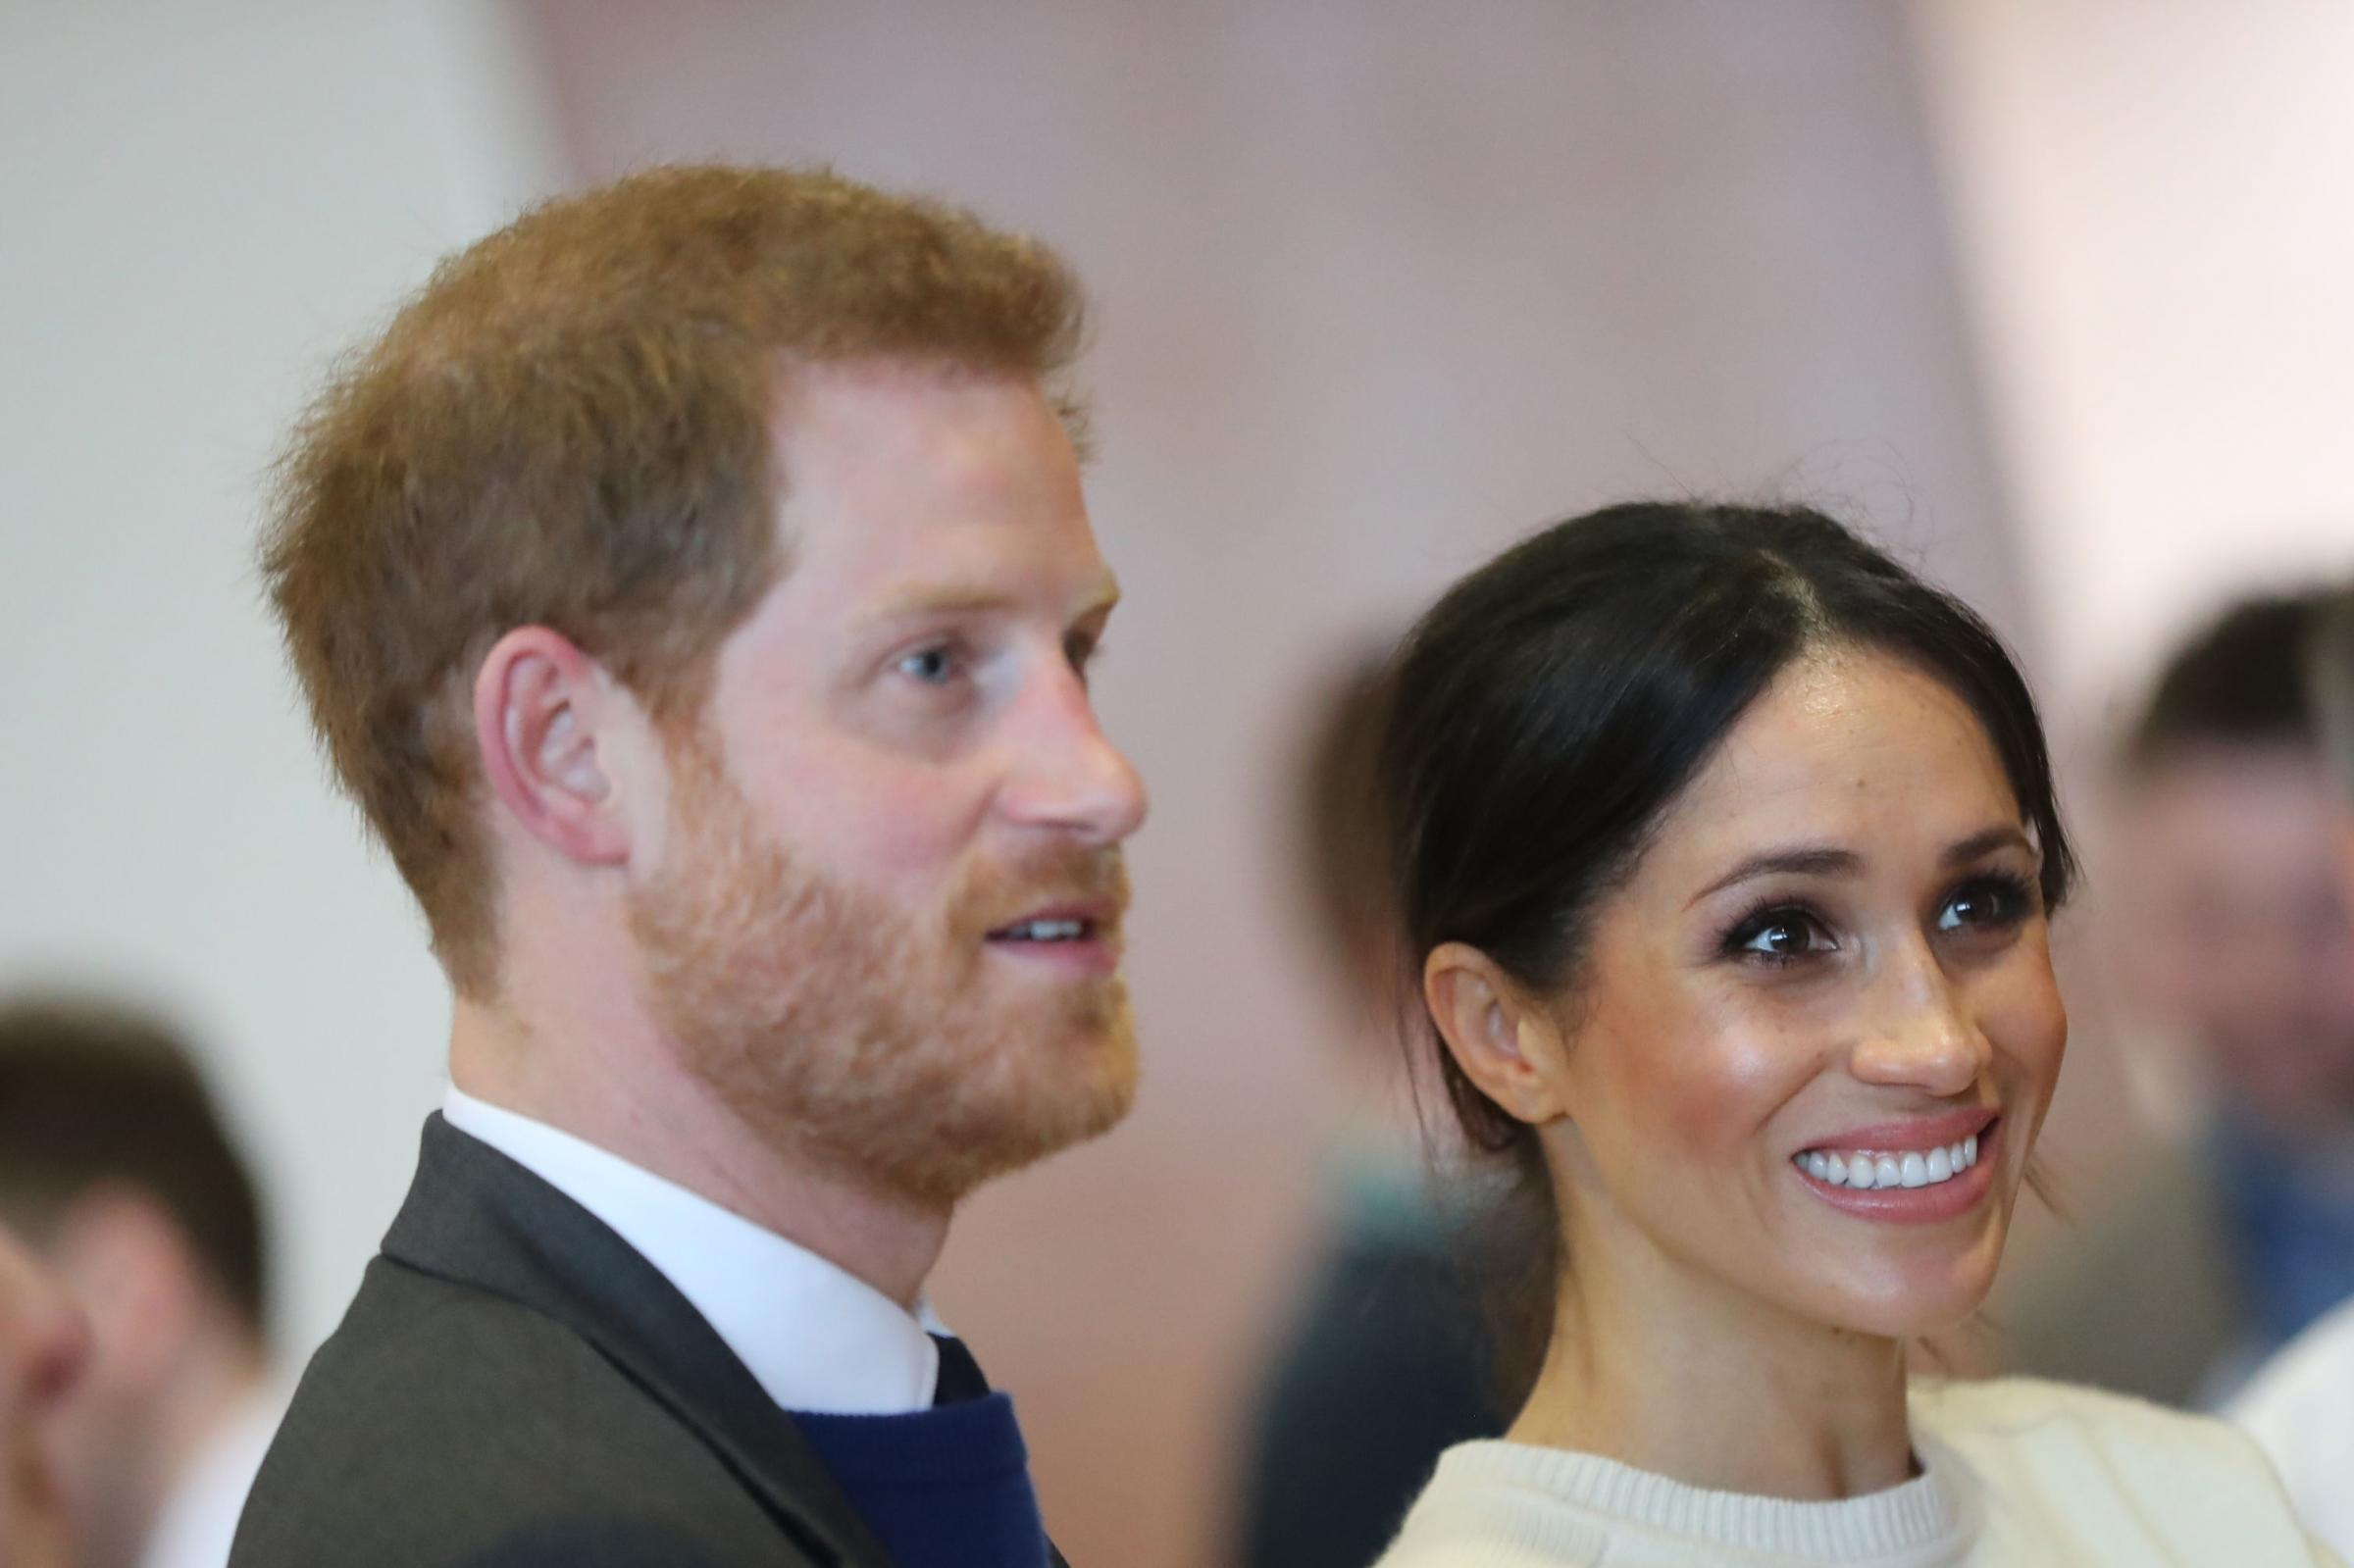 Airbnb says Slough most popular destination for visitors to stay ahead of wedding of Prince Harry and Meghan Markle - PA WIRE